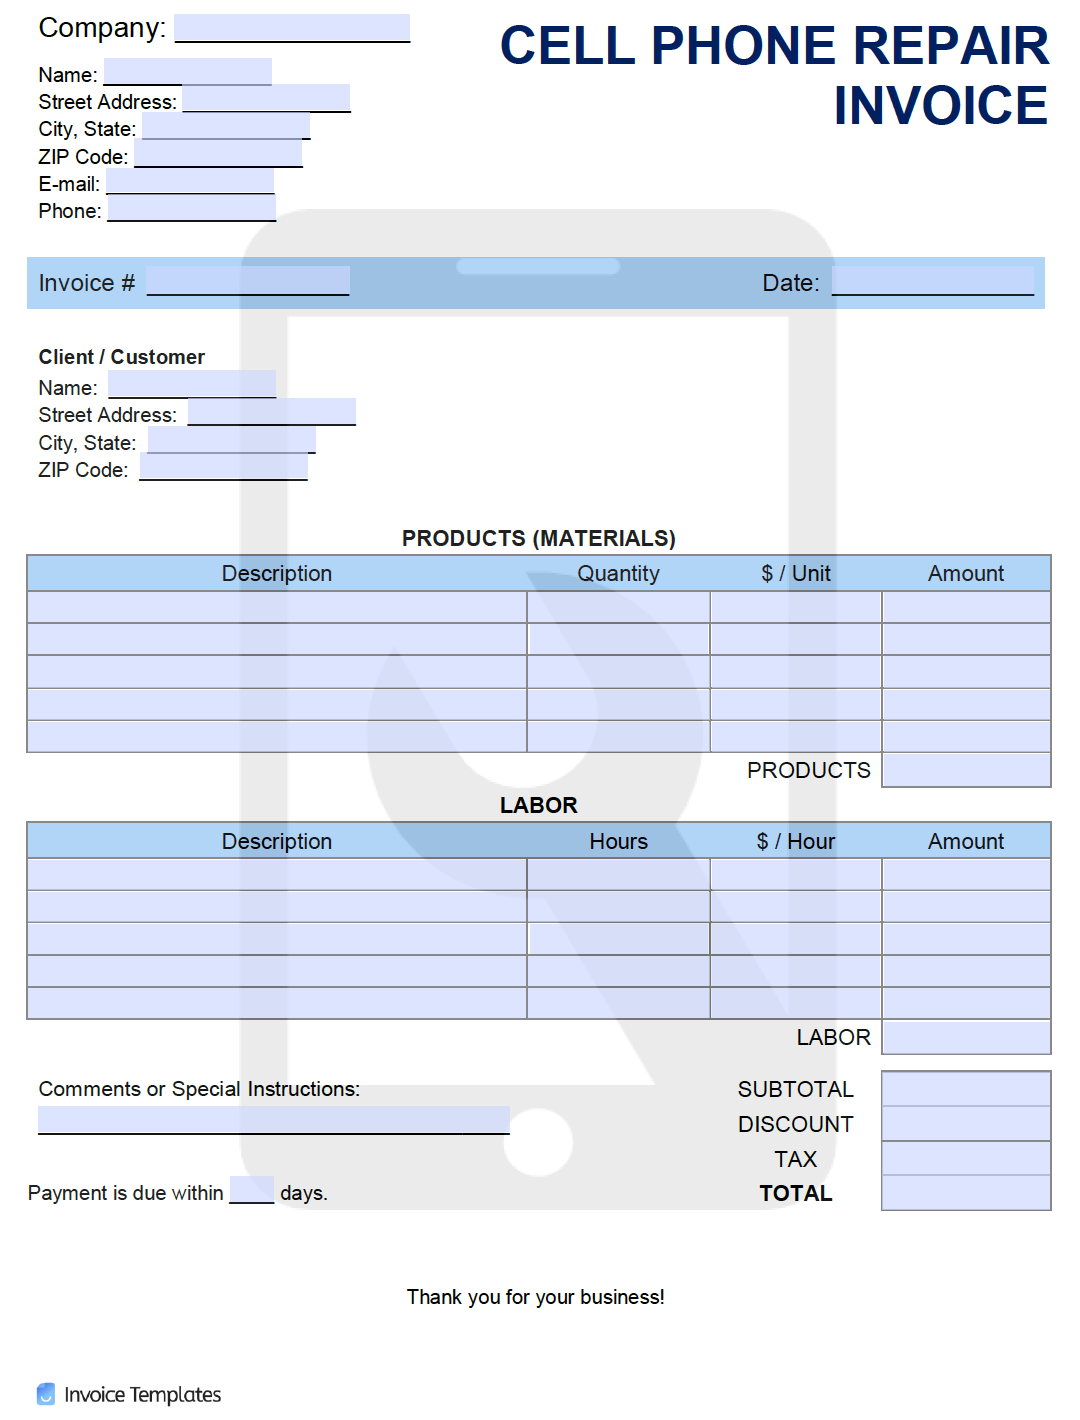 Free Cell Phone Repair Invoice Template Pdf Word Excel